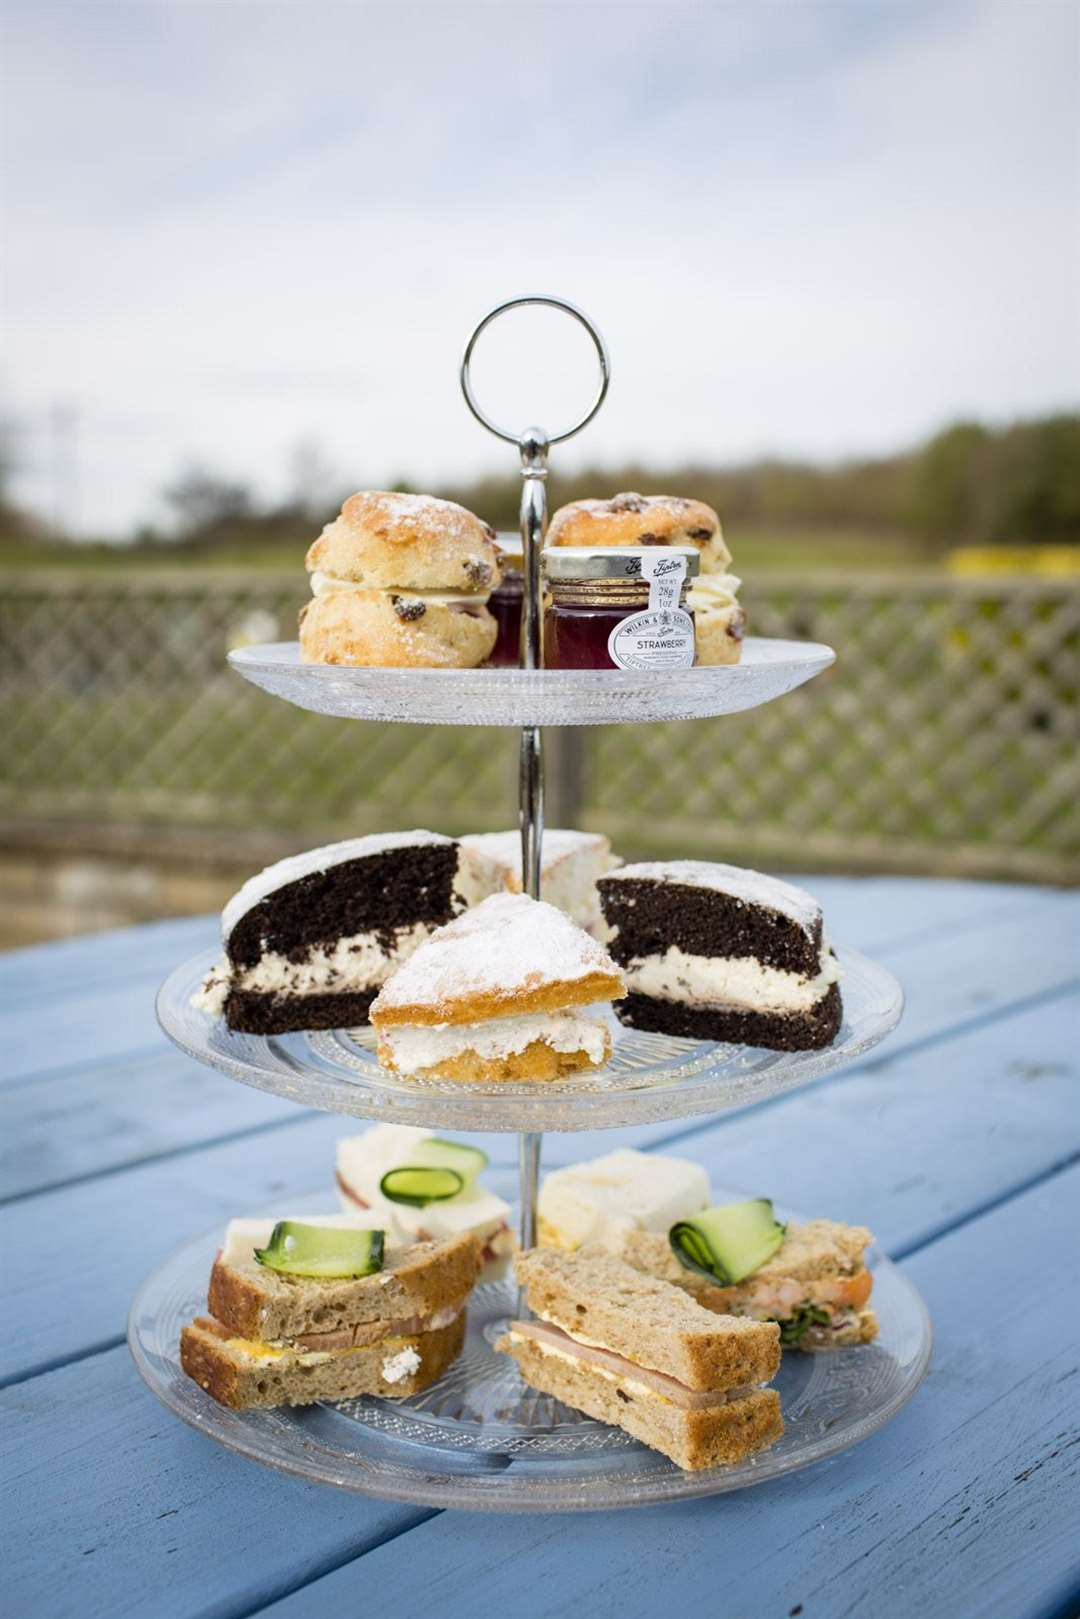 Bourn Golf & Leisure Prosecco Afternoon Tea | Photo: https://www.ianolsson.com (10365620)